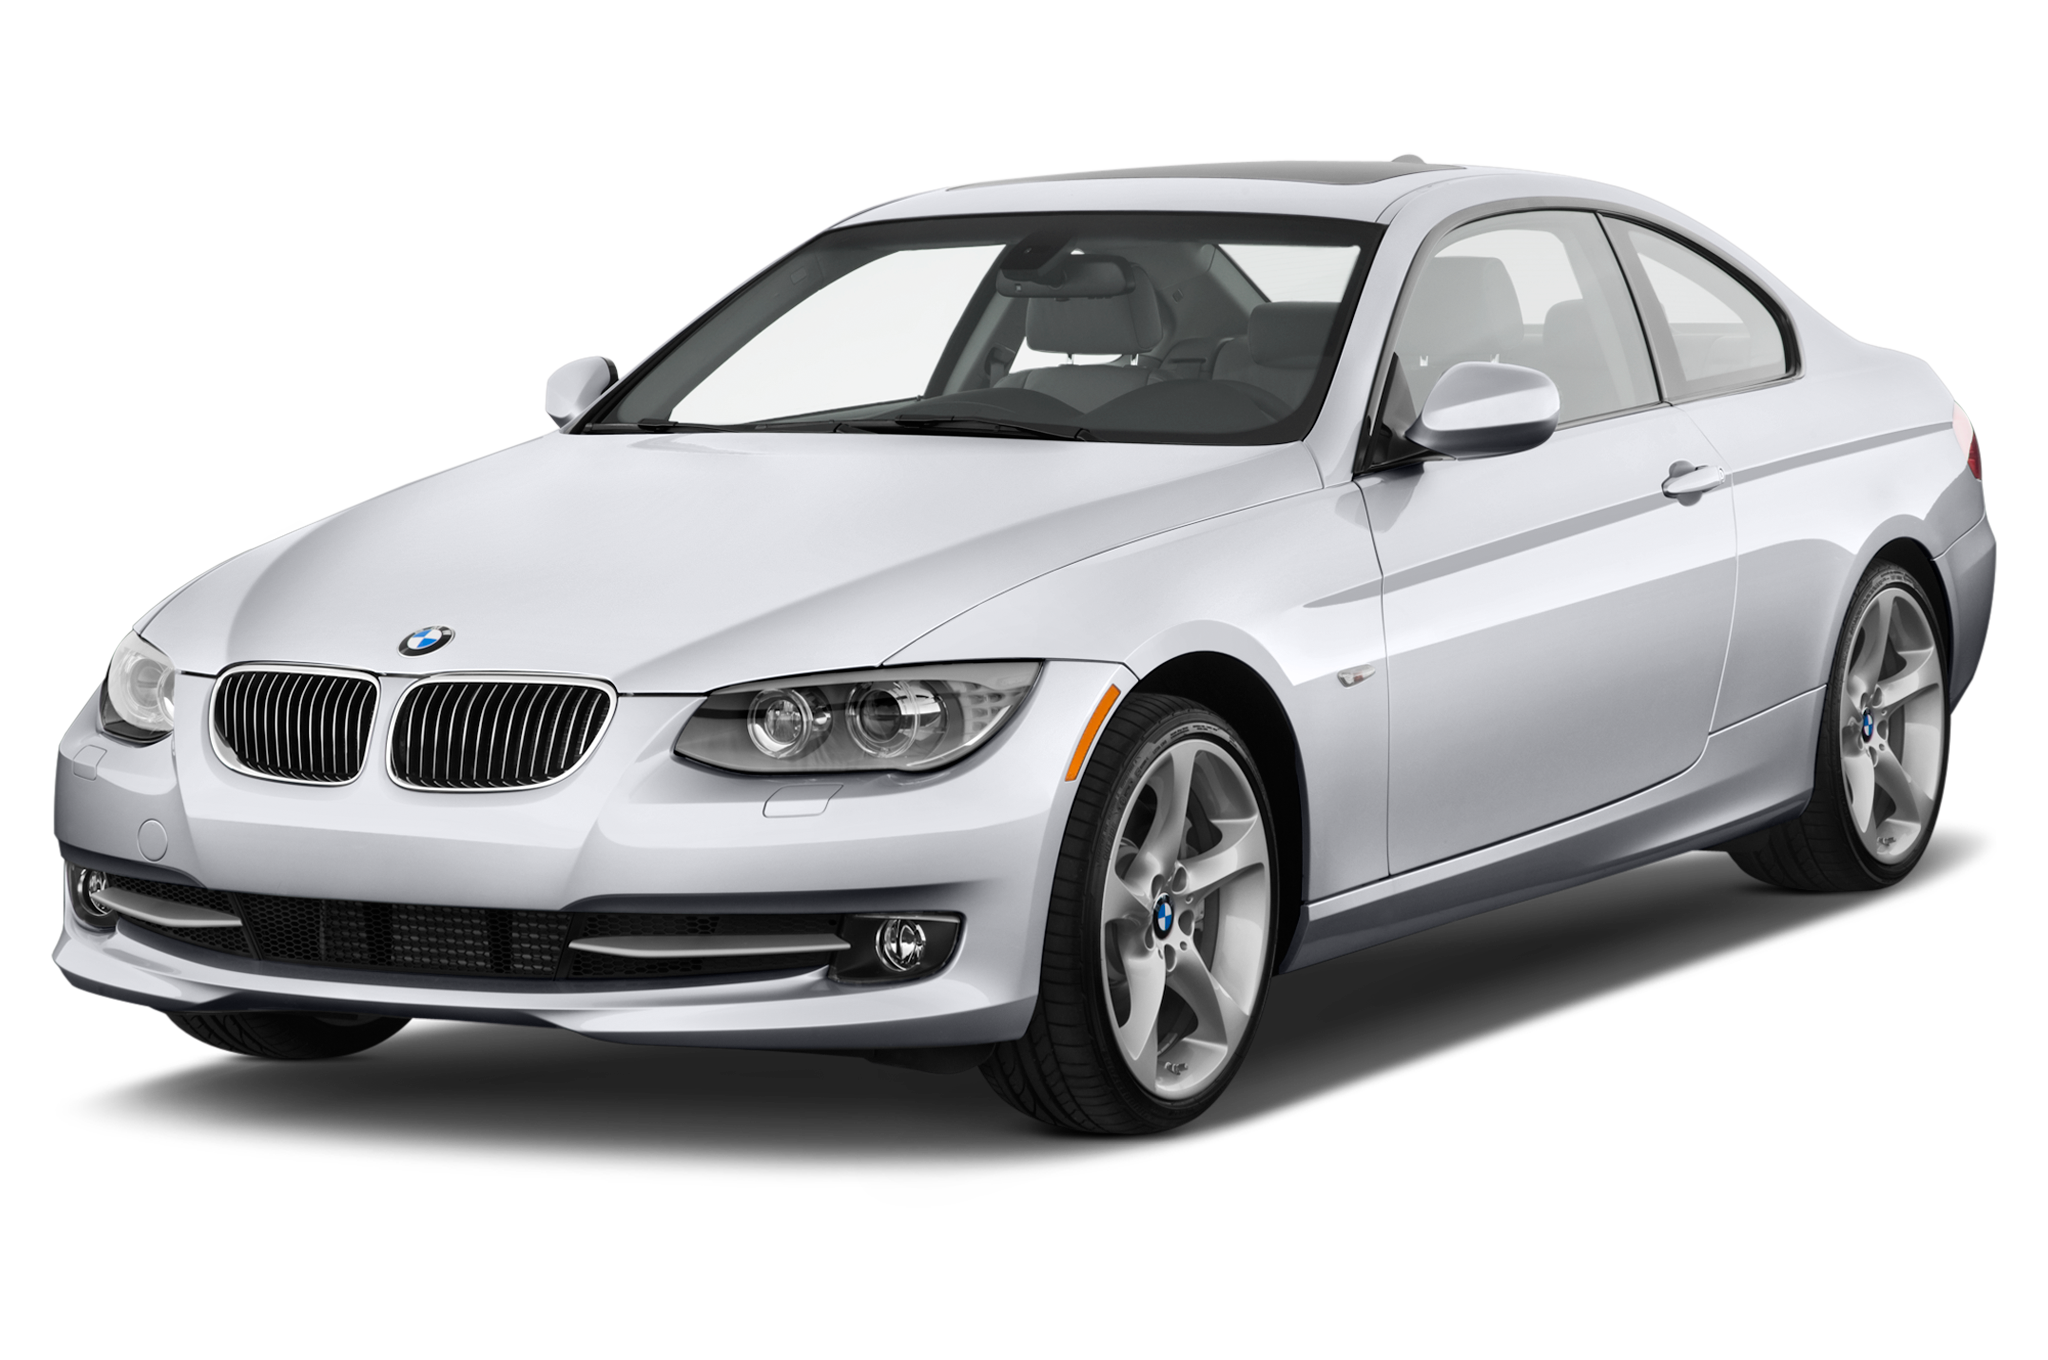 2012 bmw 3 series 328i xdrive coupe specs and features. Black Bedroom Furniture Sets. Home Design Ideas